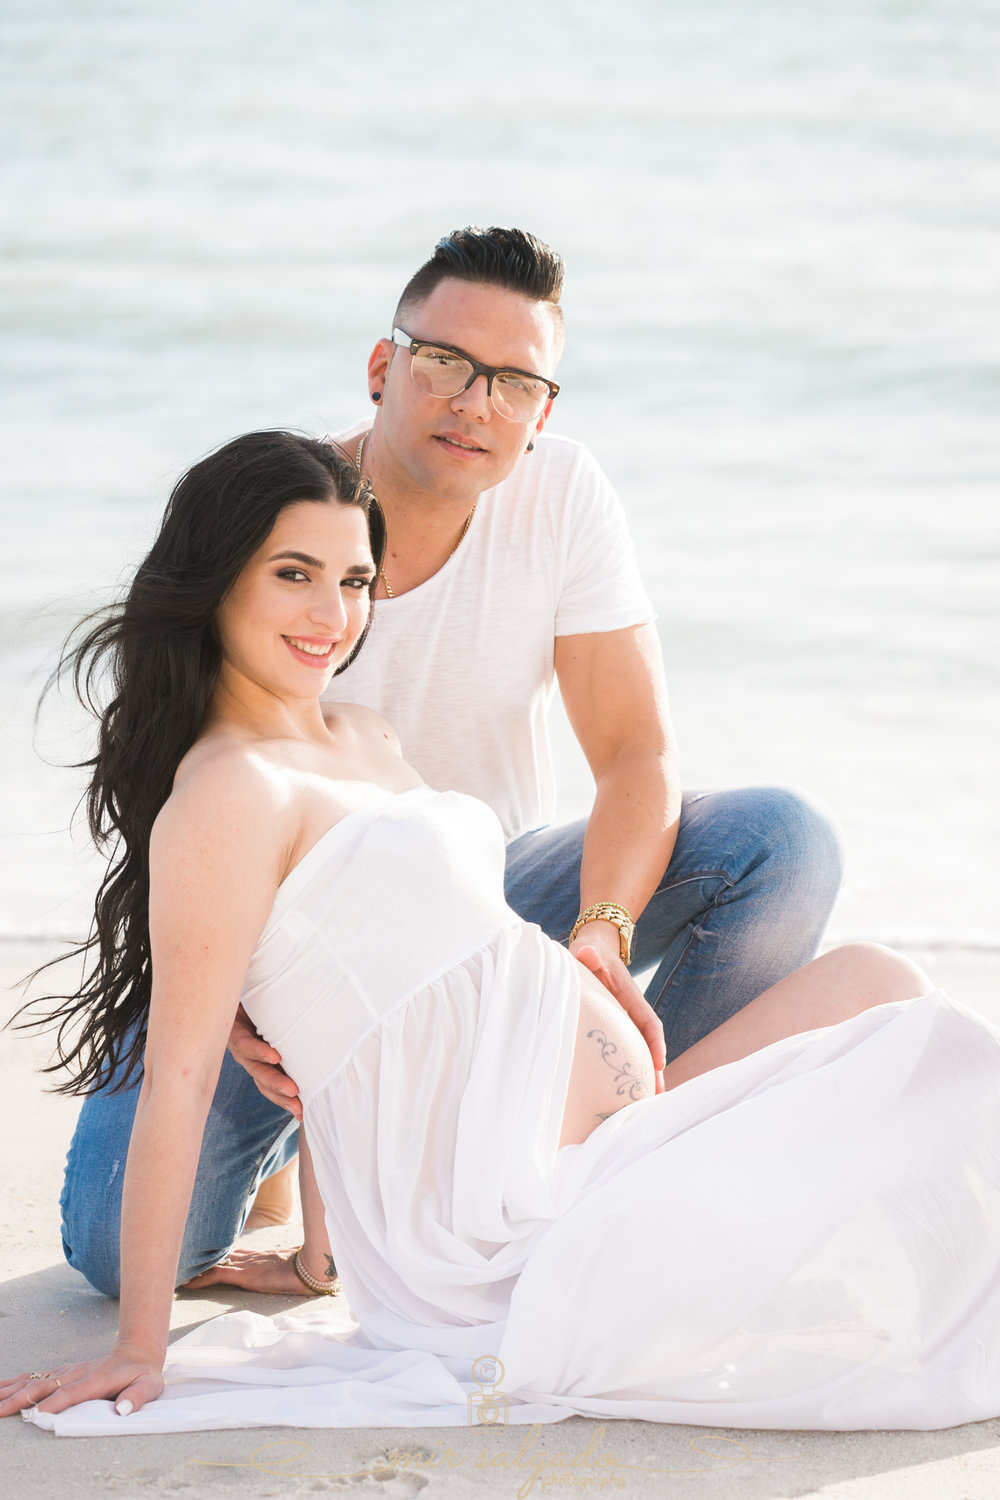 St.Pete-maternity-session, St.Pete-maternity-photographer, Tampa-photographer